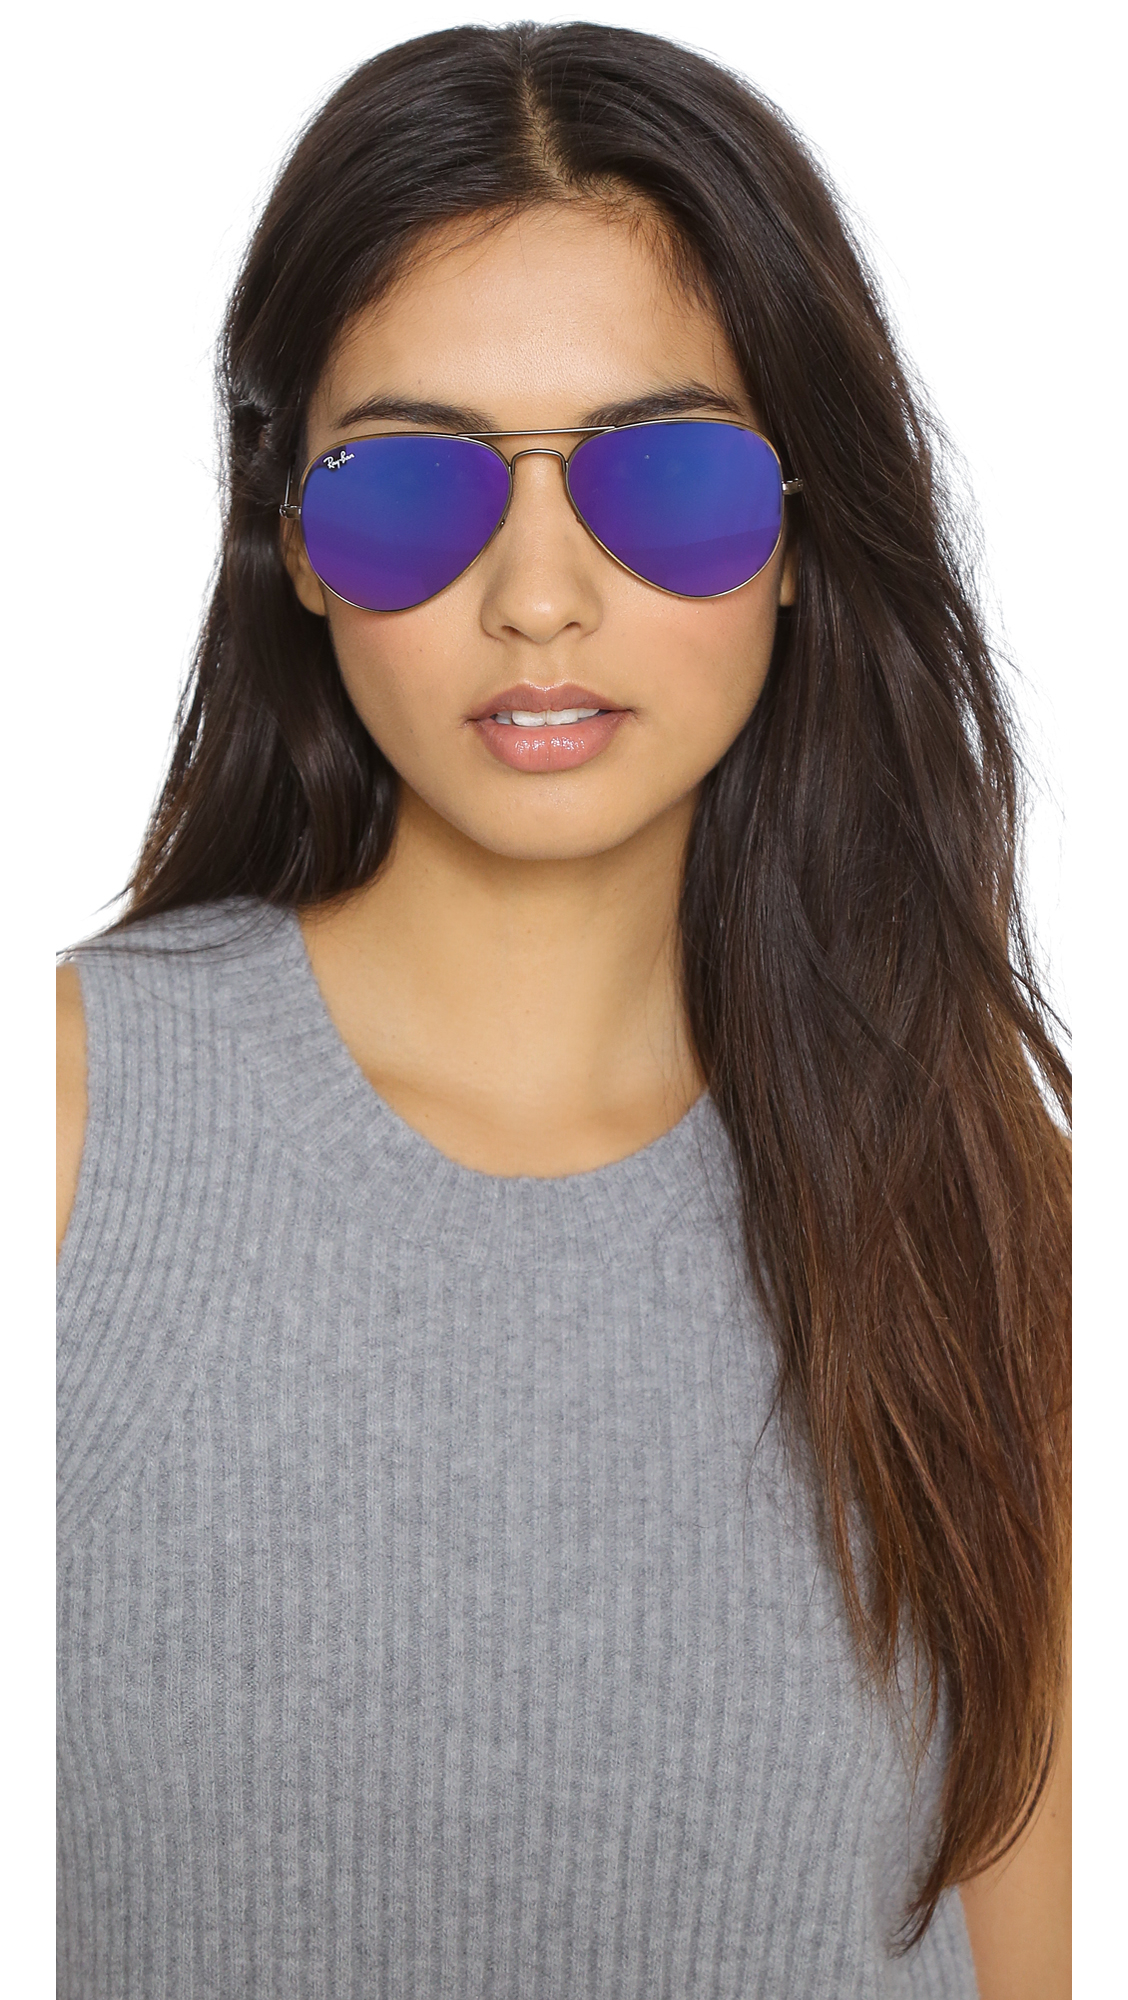 Lyst Ray Ban Mirrored Aviator Sunglasses Bronze Purple